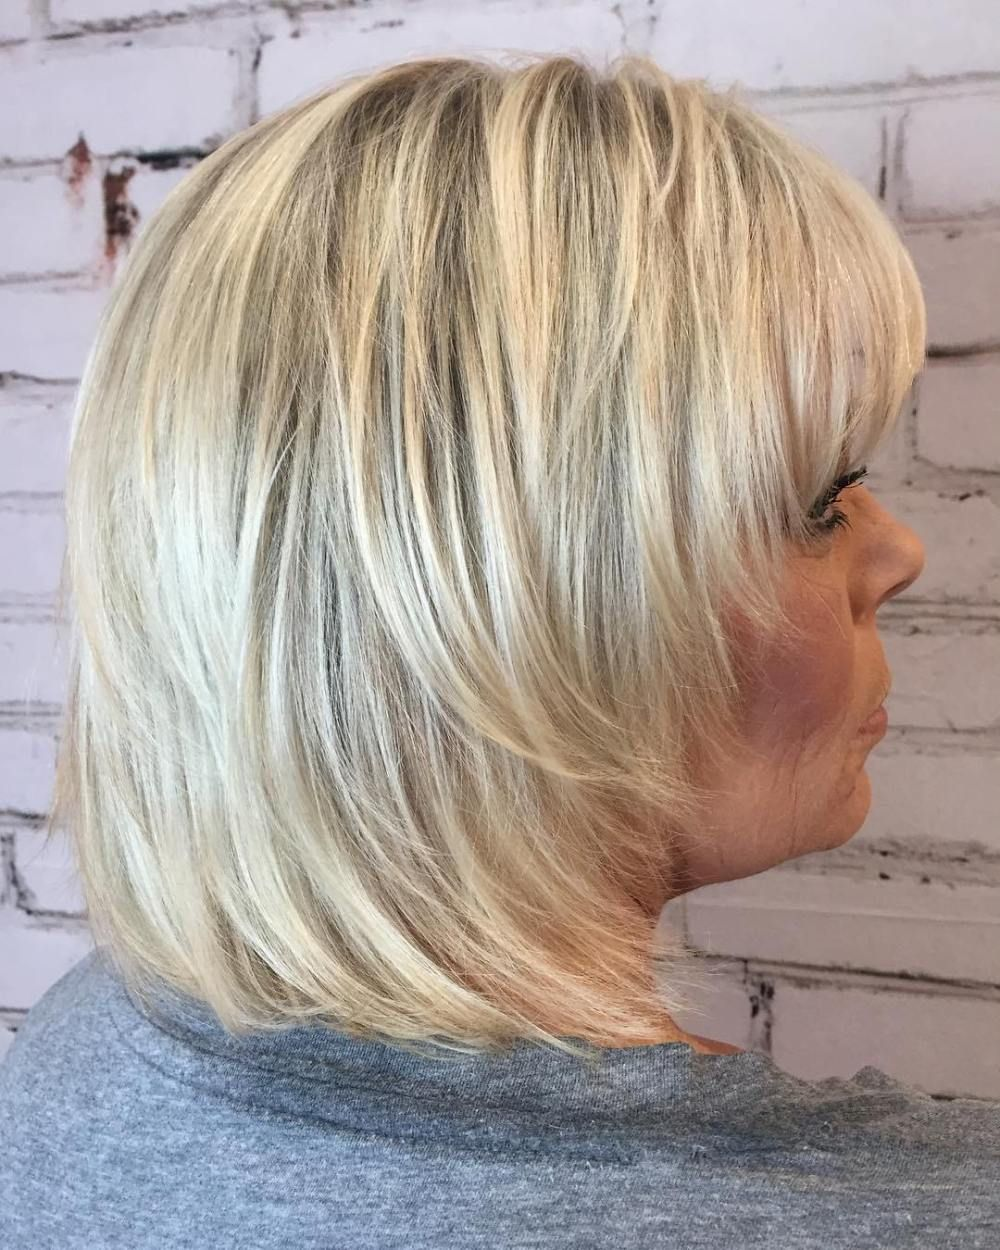 20 Shaggy Hairstyles For Women With Fine Hair Over 50 Fine Hair